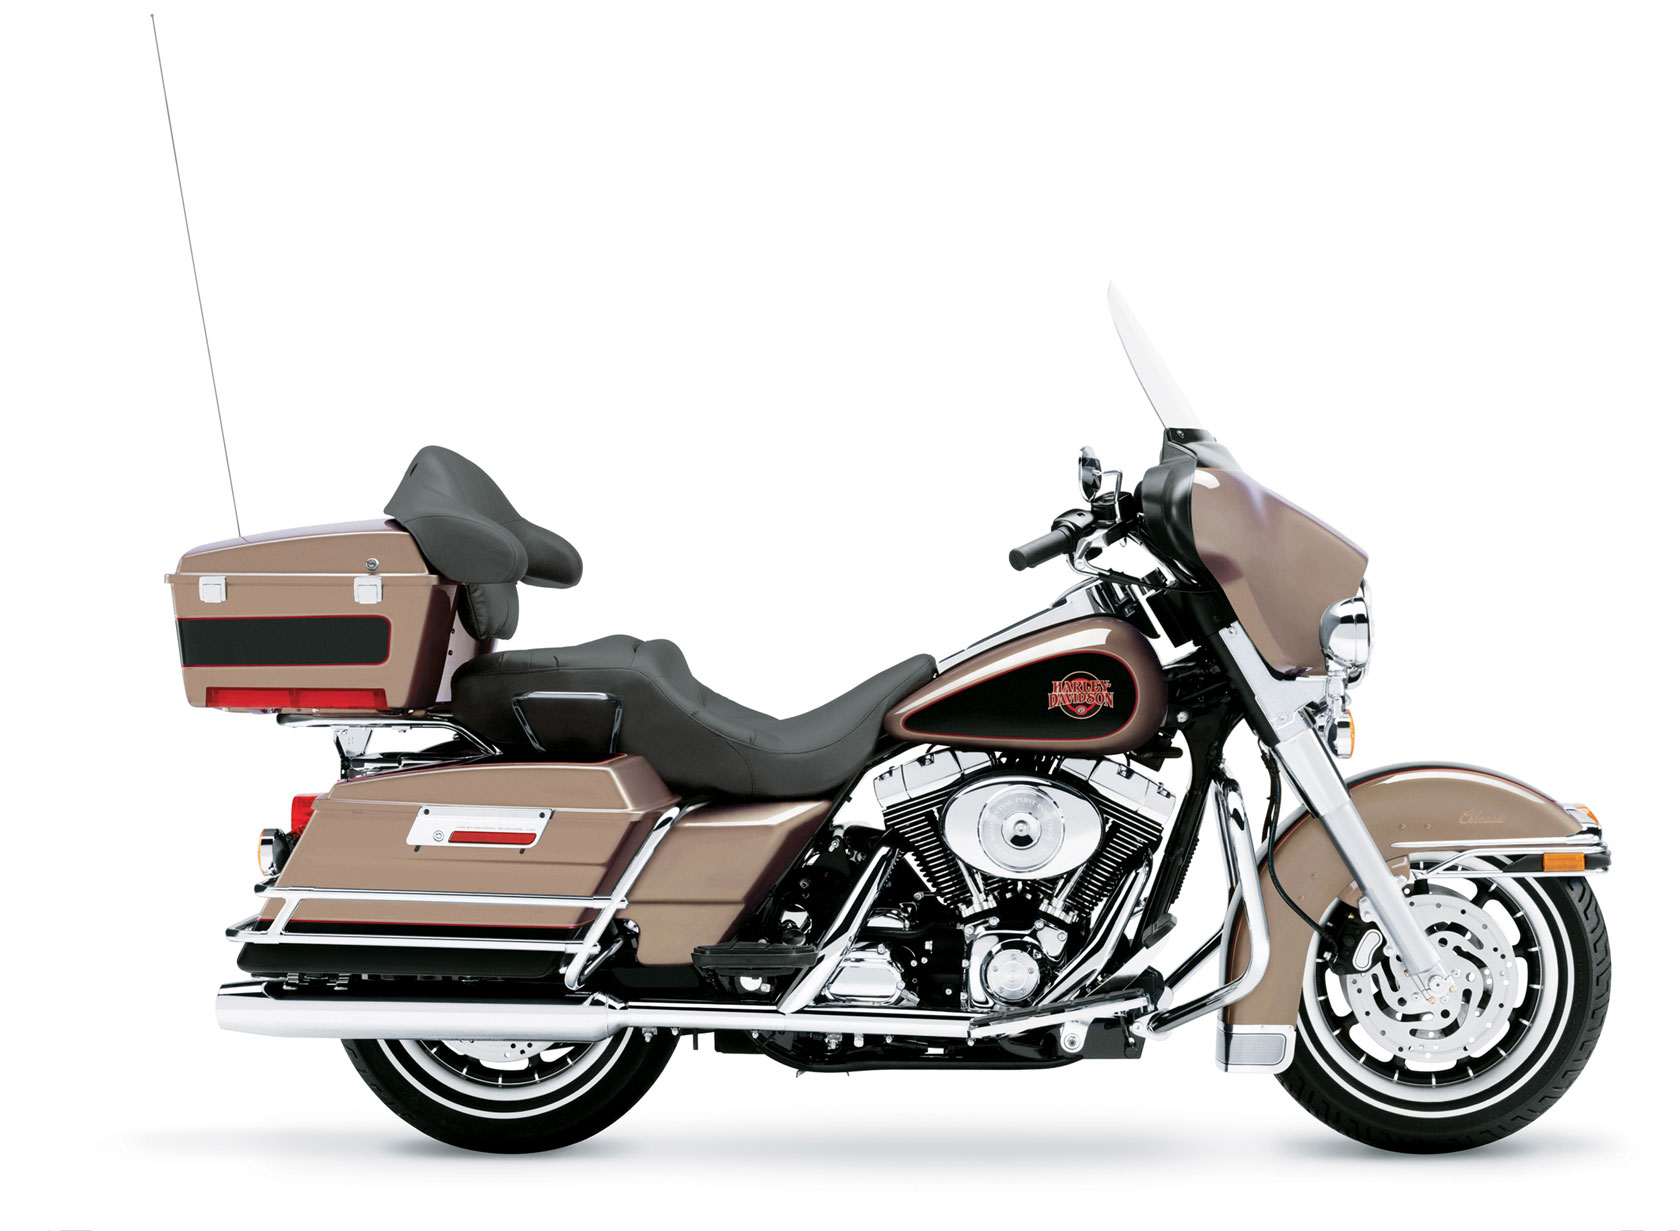 Harley-Davidson FLHTC Electra Glide Classic 2002 pics #17766